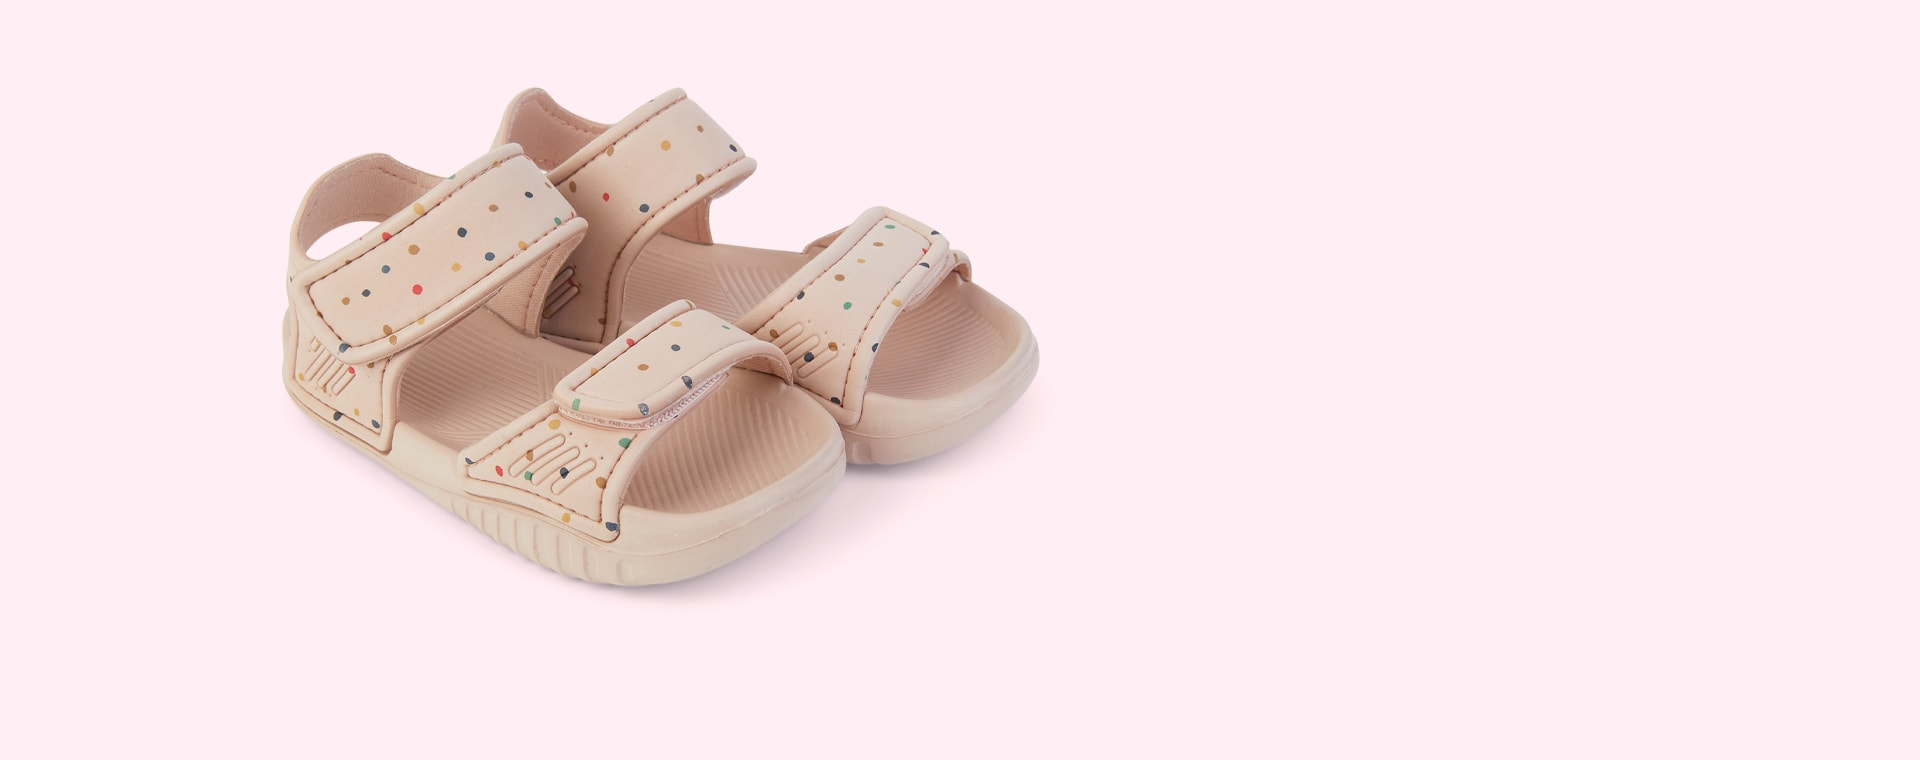 Confetti mix Liewood Blumer Sandals